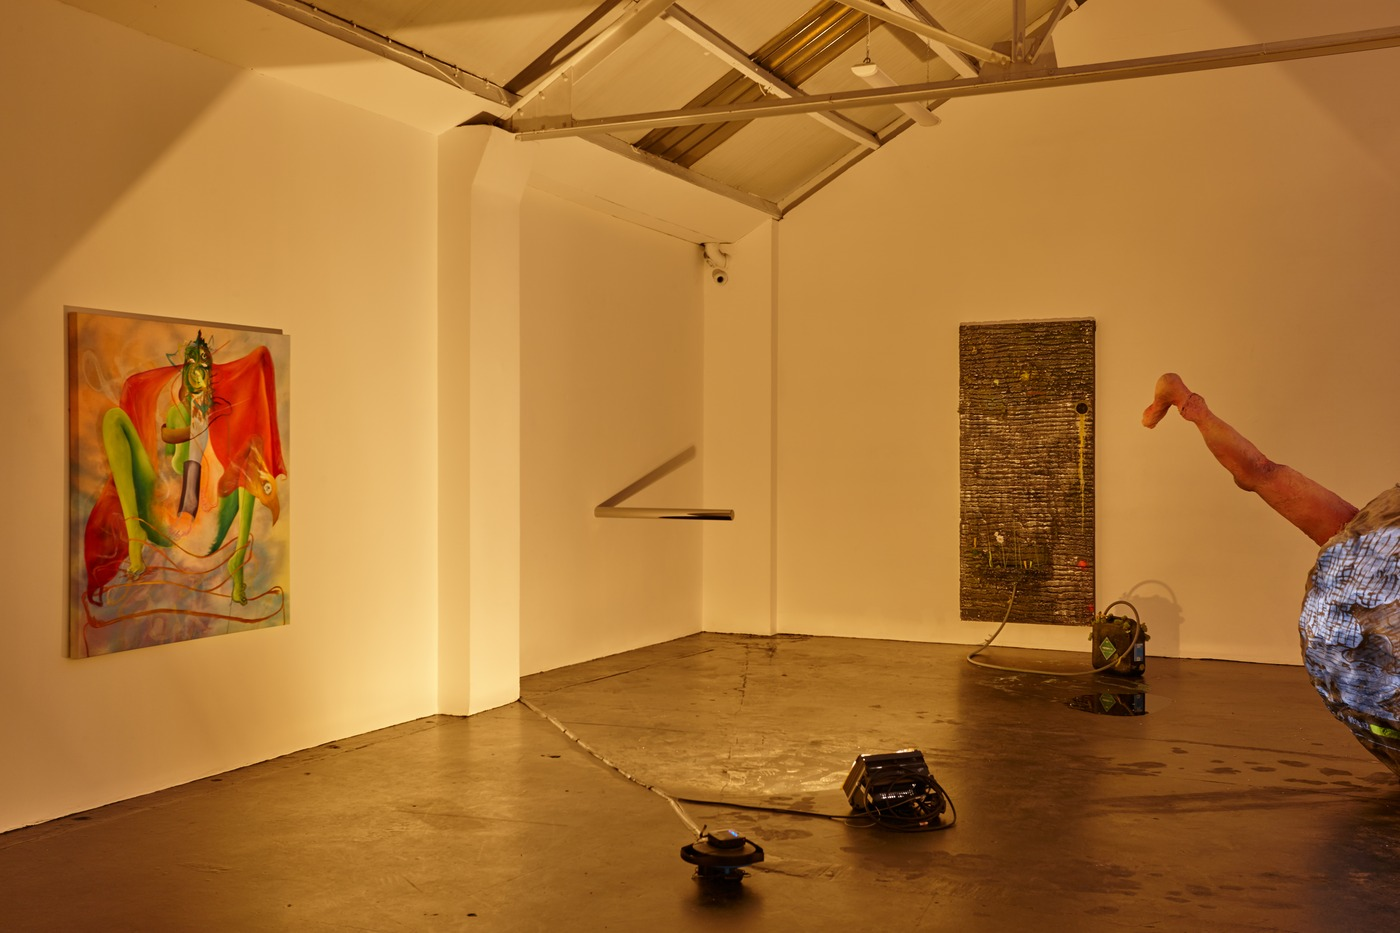 dead among the dead! - Installation View 2